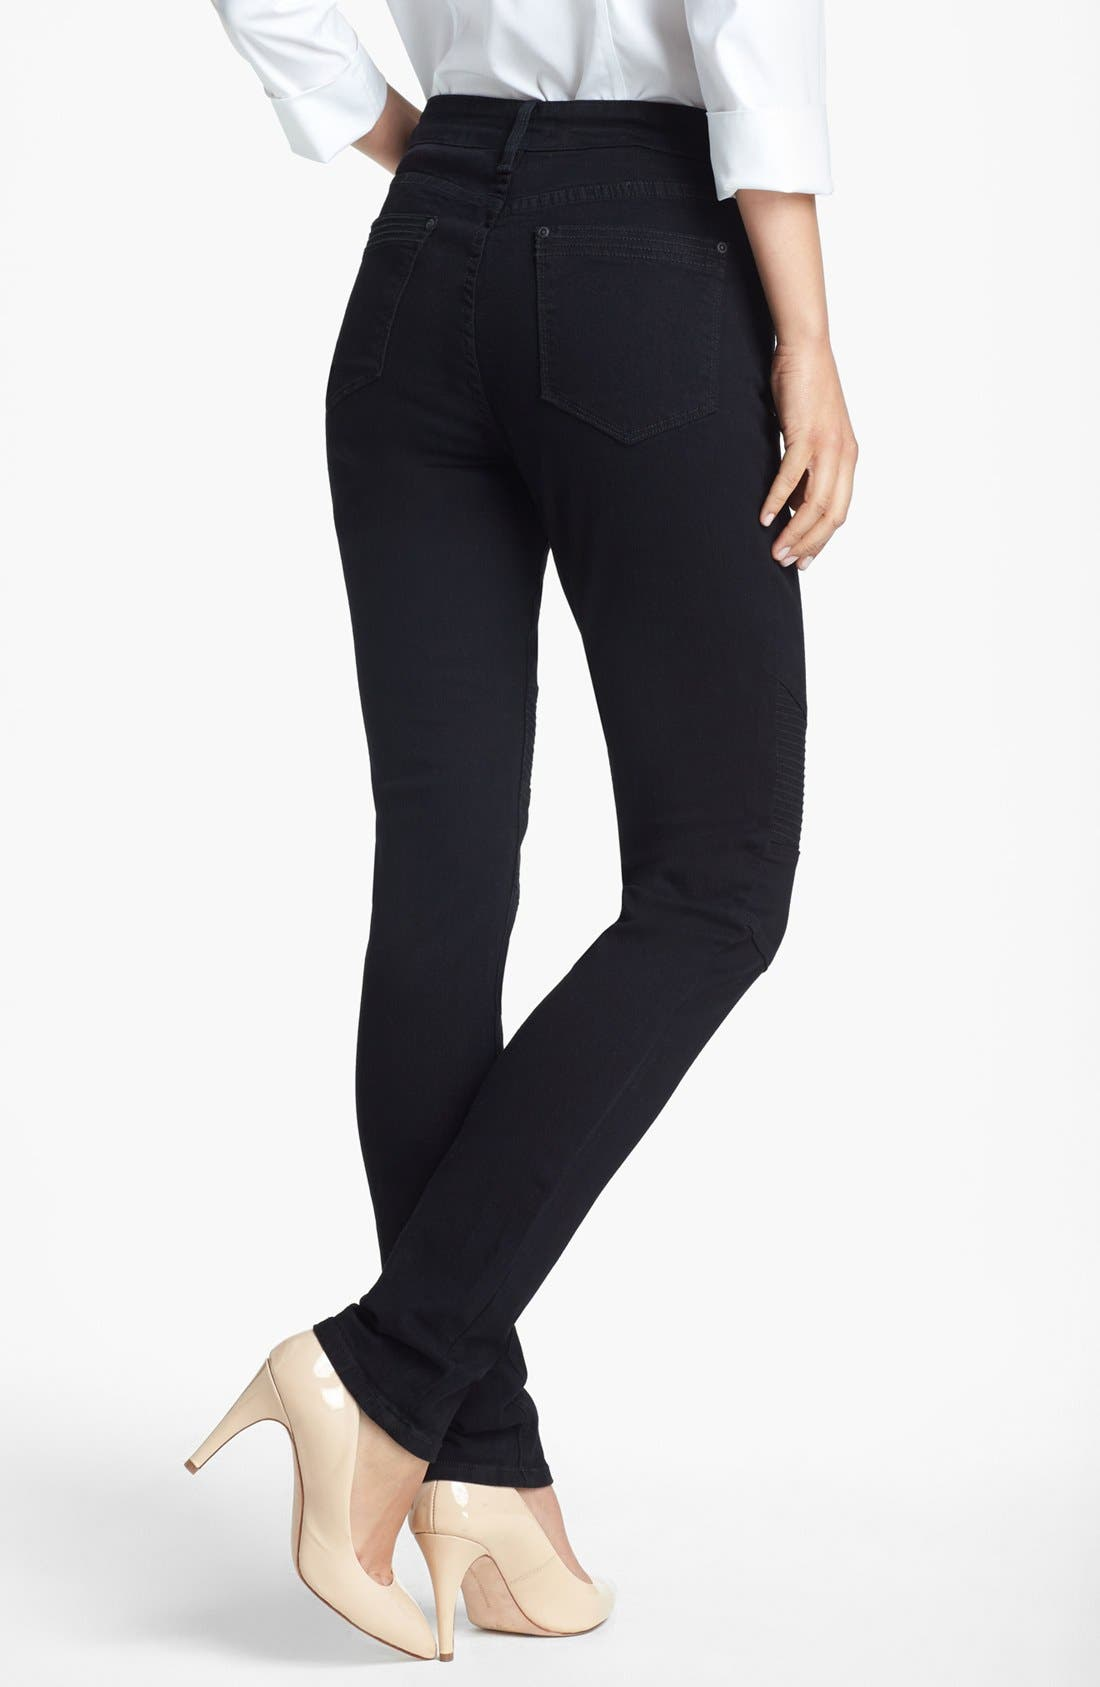 Alternate Image 2  - NYDJ Gabriella' Stretch Moto Skinny Jeans (Black)